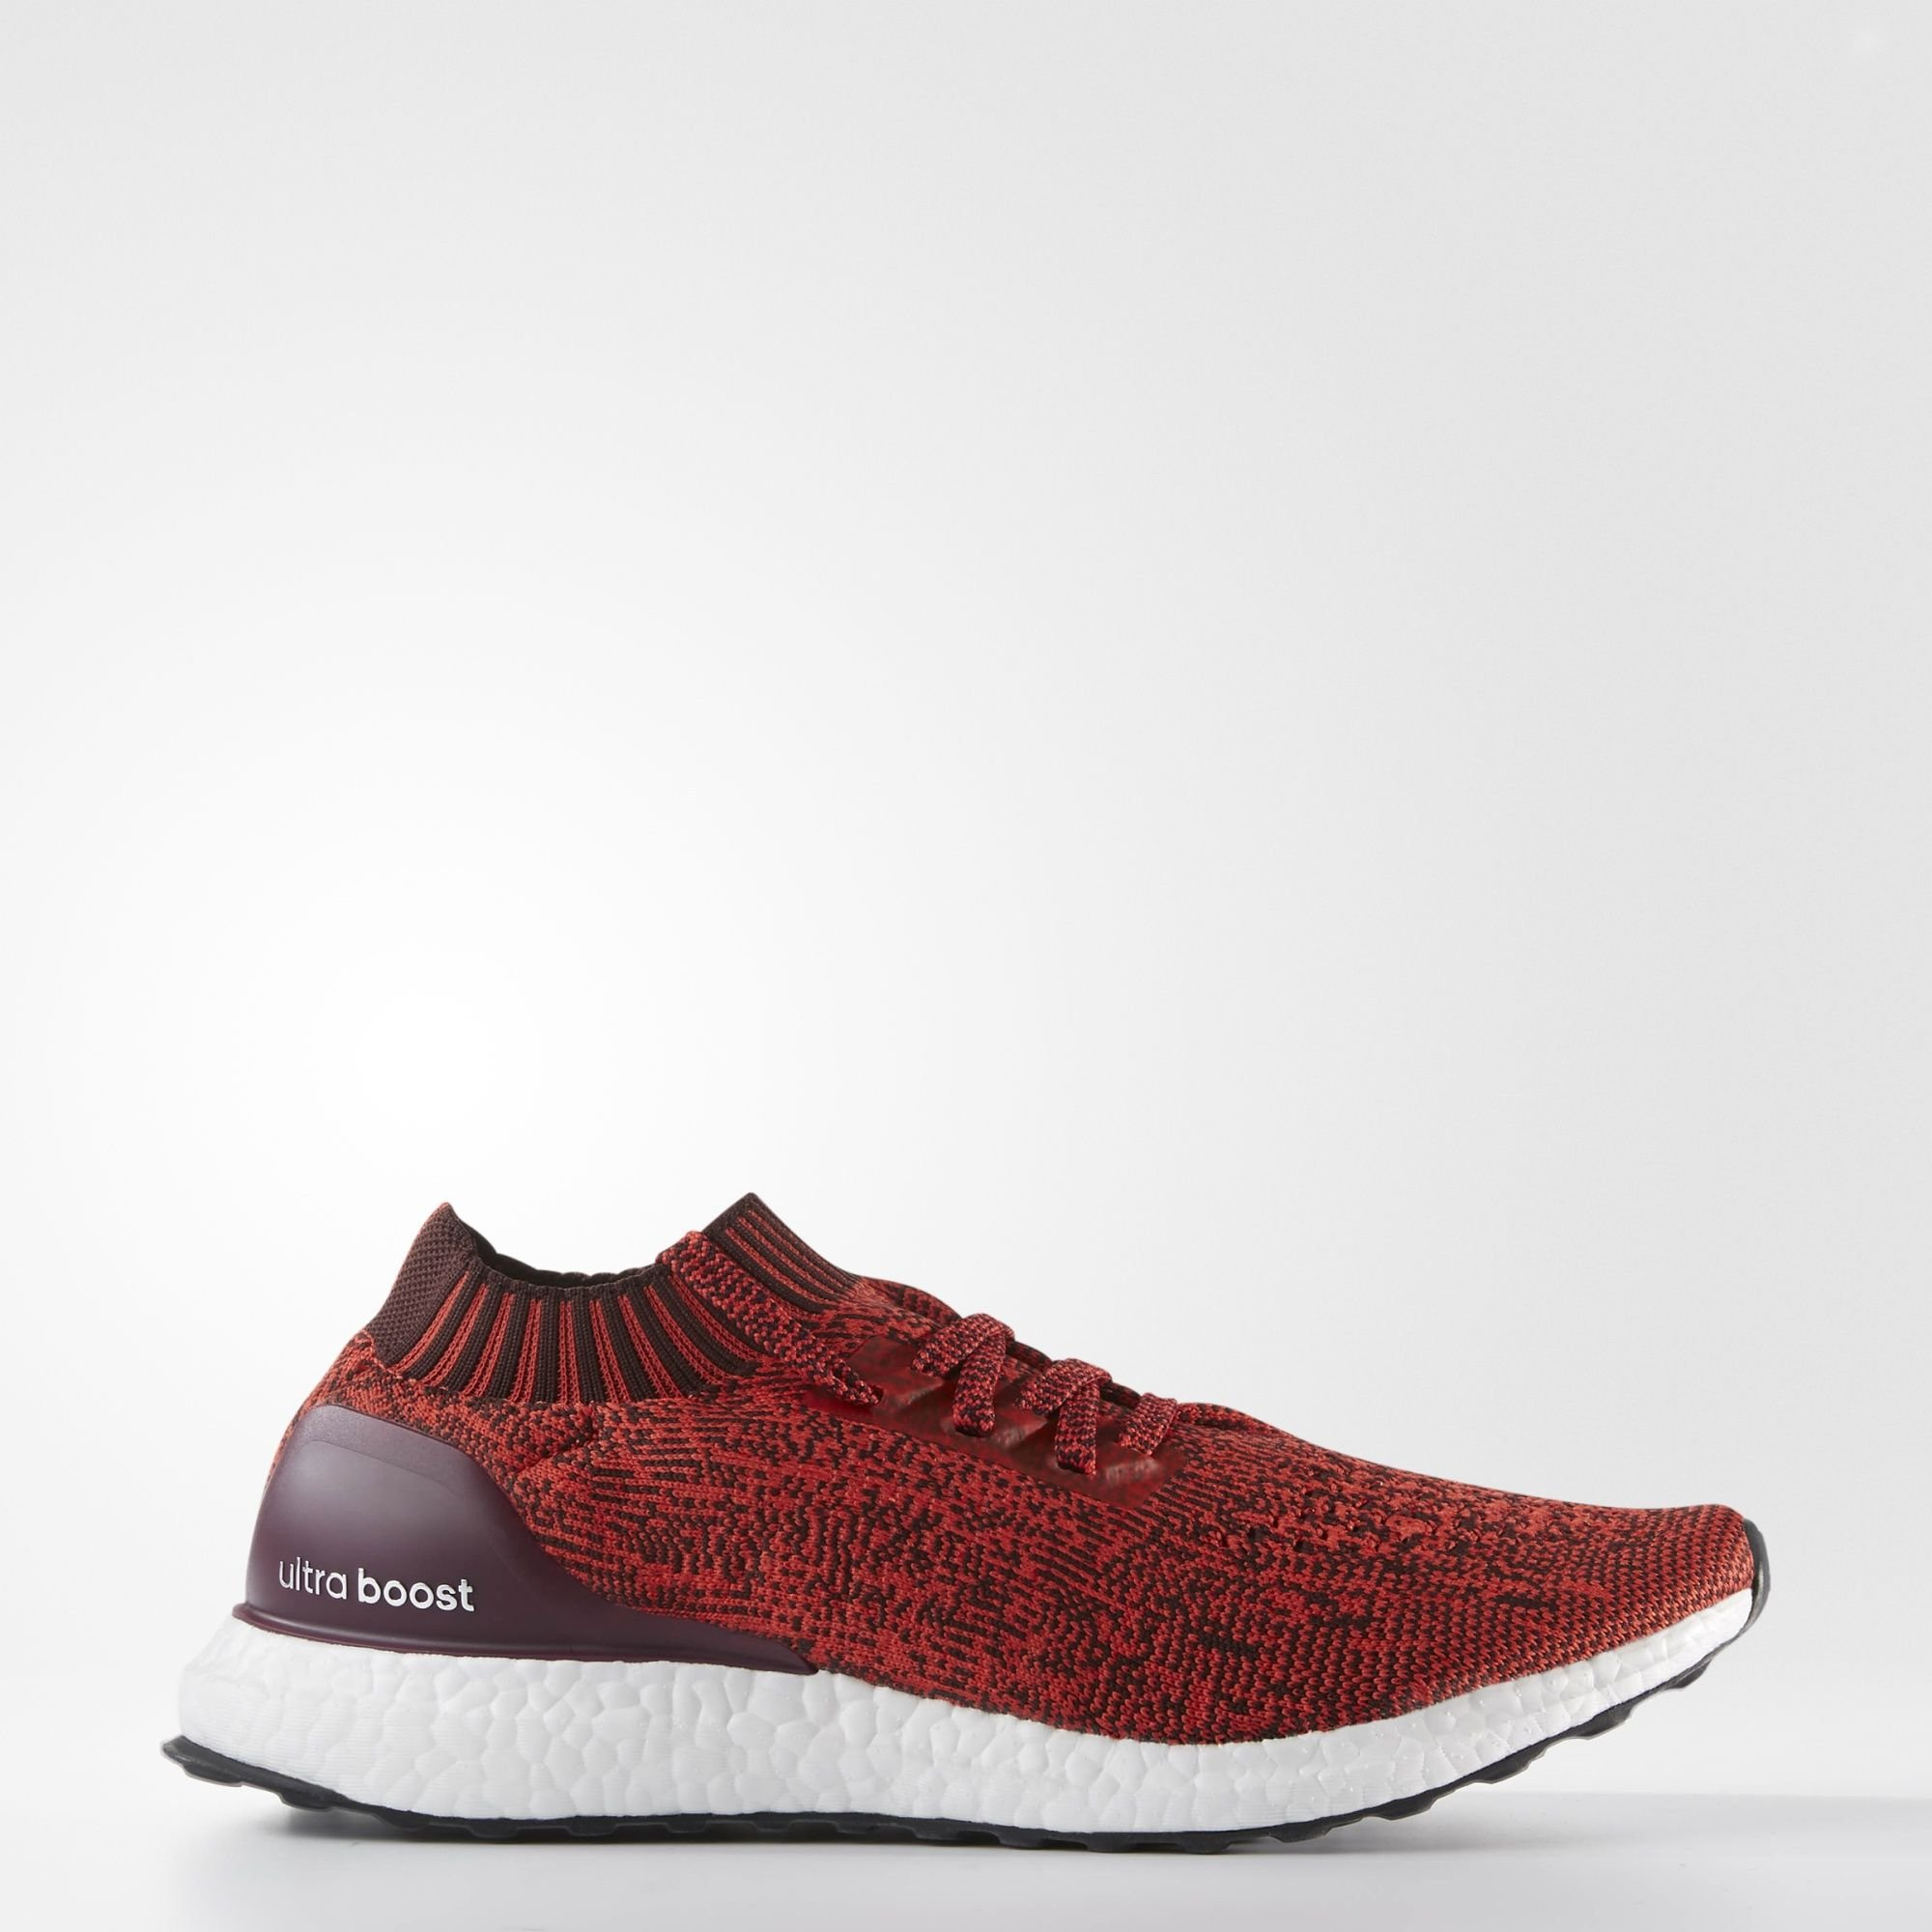 14f22768255 Galleon - Adidas Ultraboost Uncaged Men s Running Shoes Dark  Burgundy Tactile Red By2554 (10.5 D(M) US)